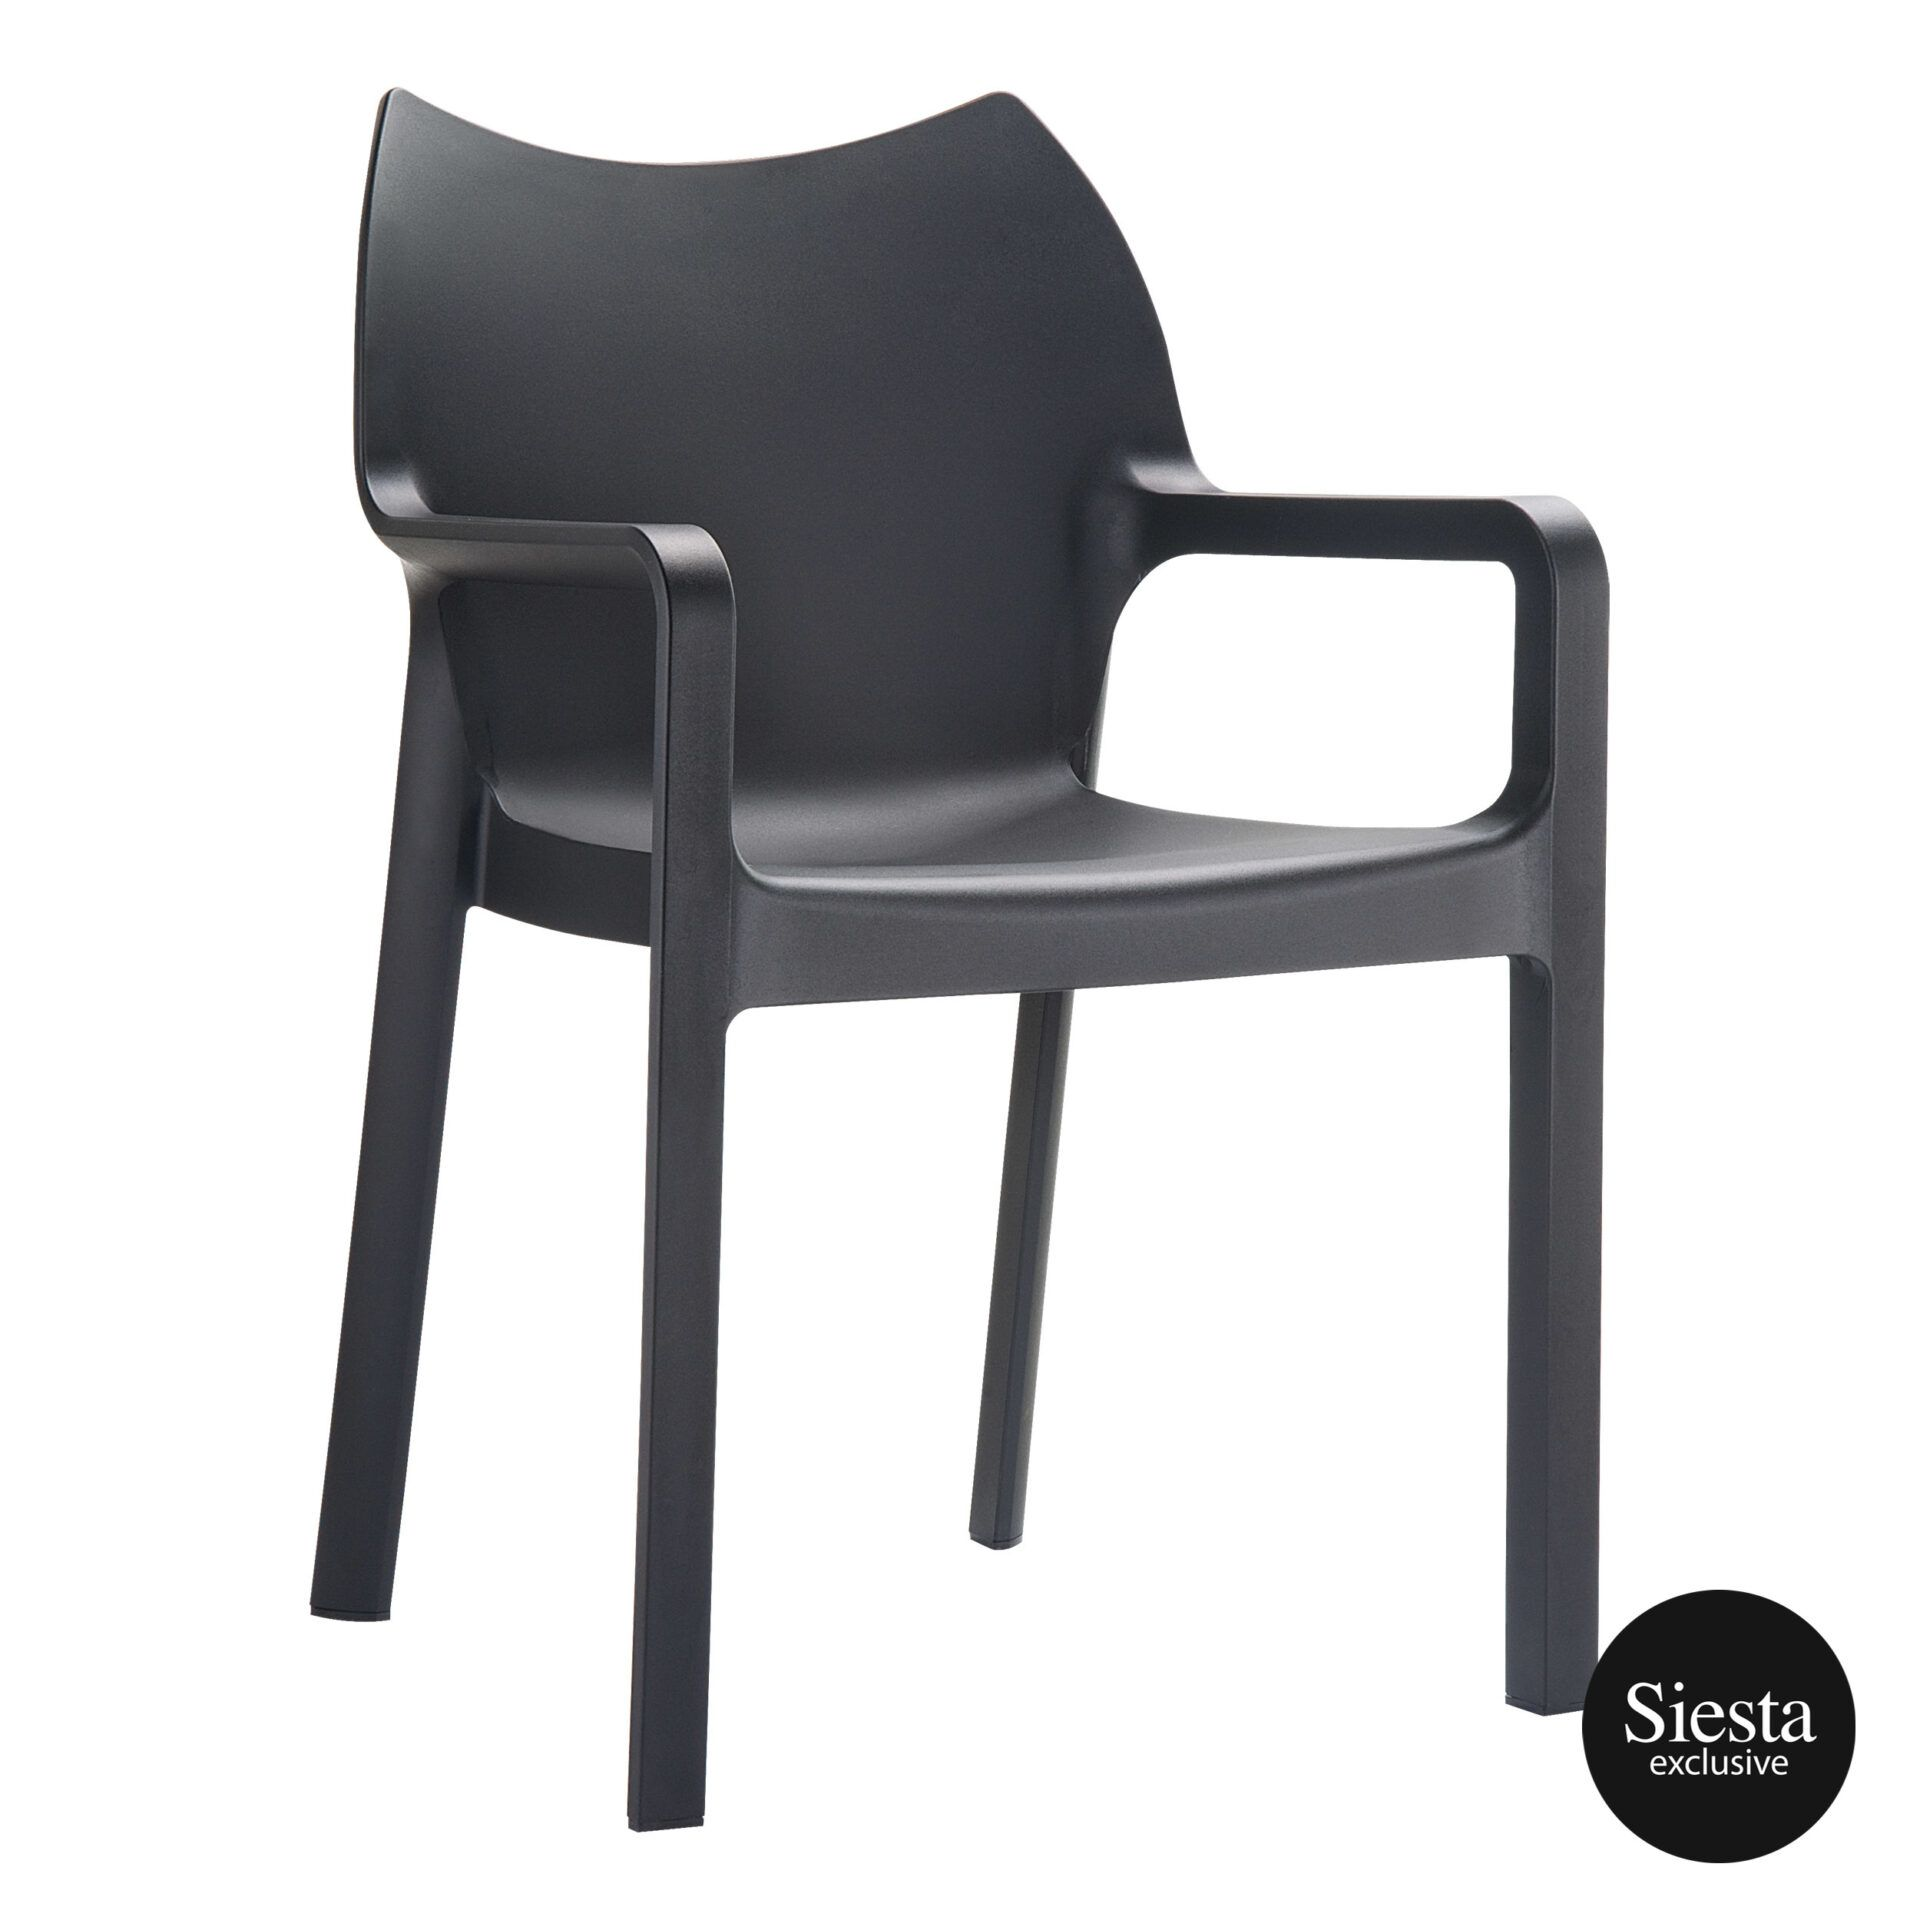 outdoor plastic seating diva chair black front side 1